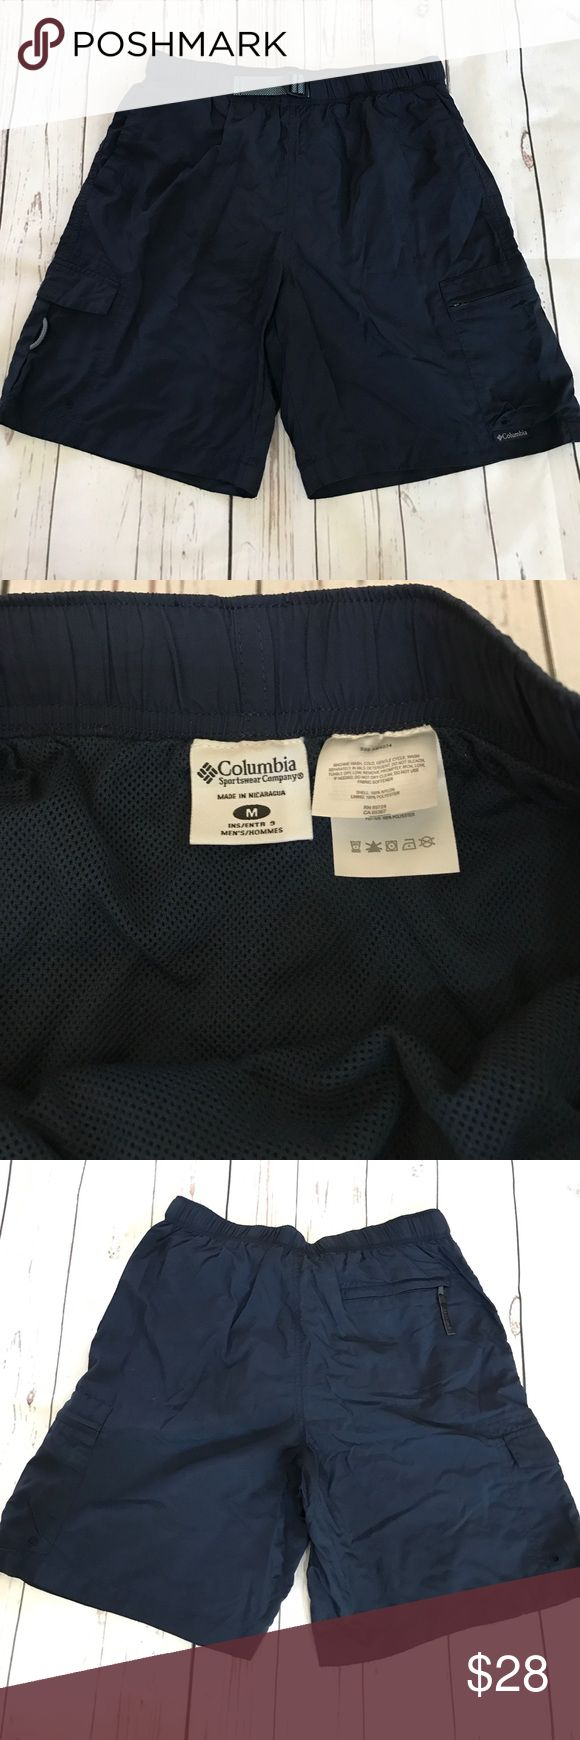 """Columbia blue packable hiking walking shorts M Men's Columbia sportswear brand navy blue packable lightweight shorts. Lots of pockets and adjustable waistband. Mesh lining inside. 9"""" inseam. Please see photos for measurements, size medium. No trades please and lowball offers ignored. Columbia Shorts Athletic"""